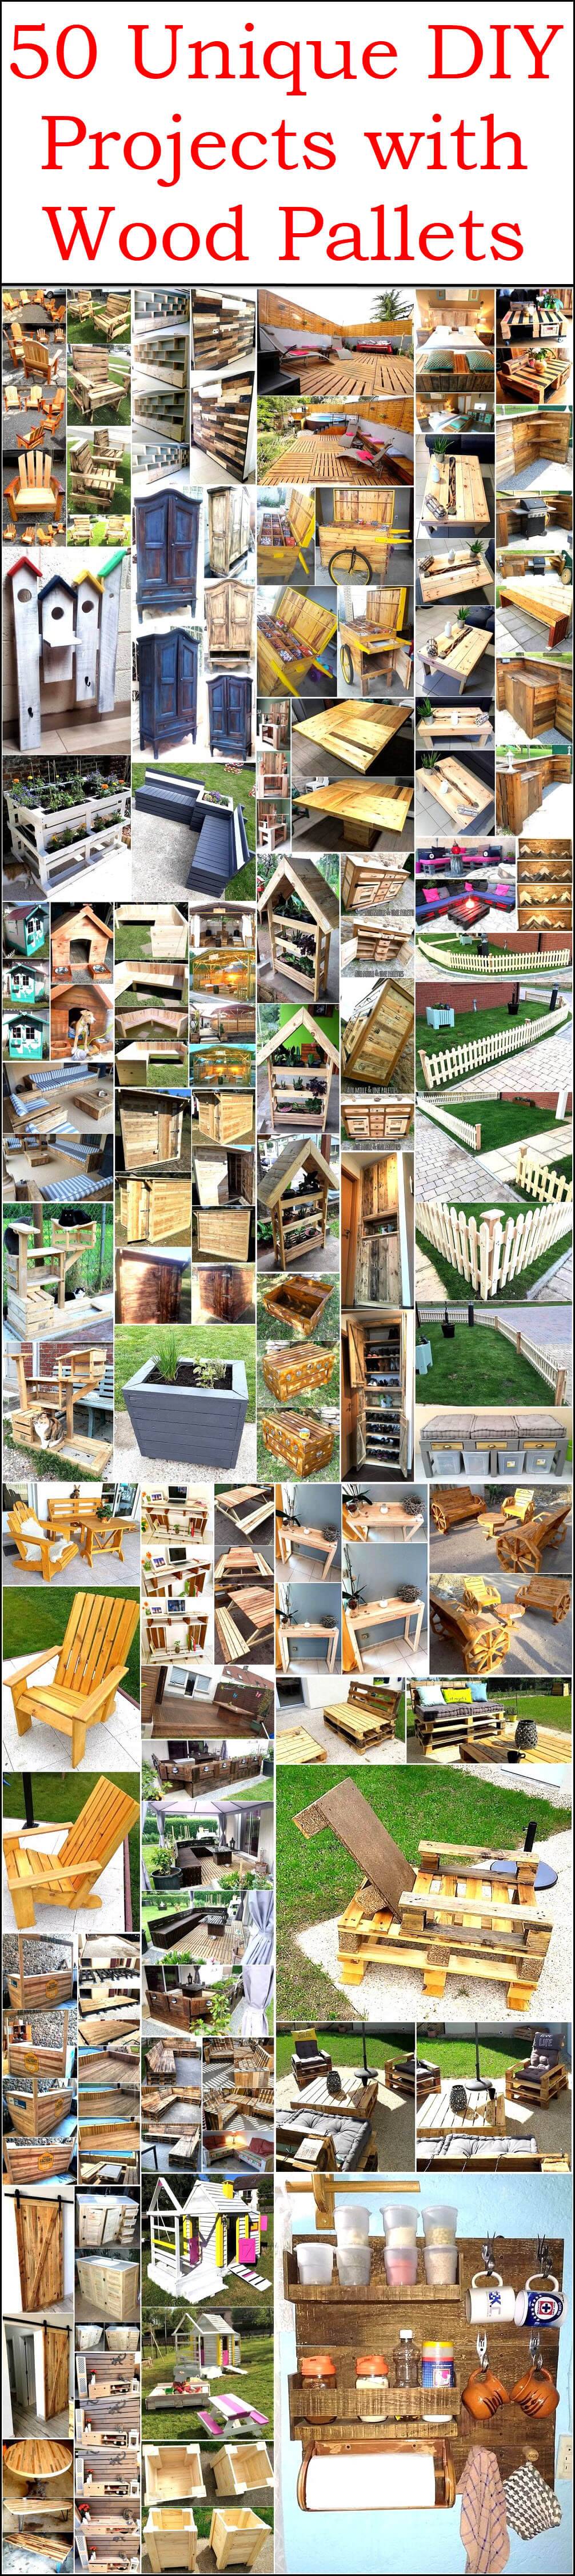 50 Unique DIY Projects with Wood Pallets